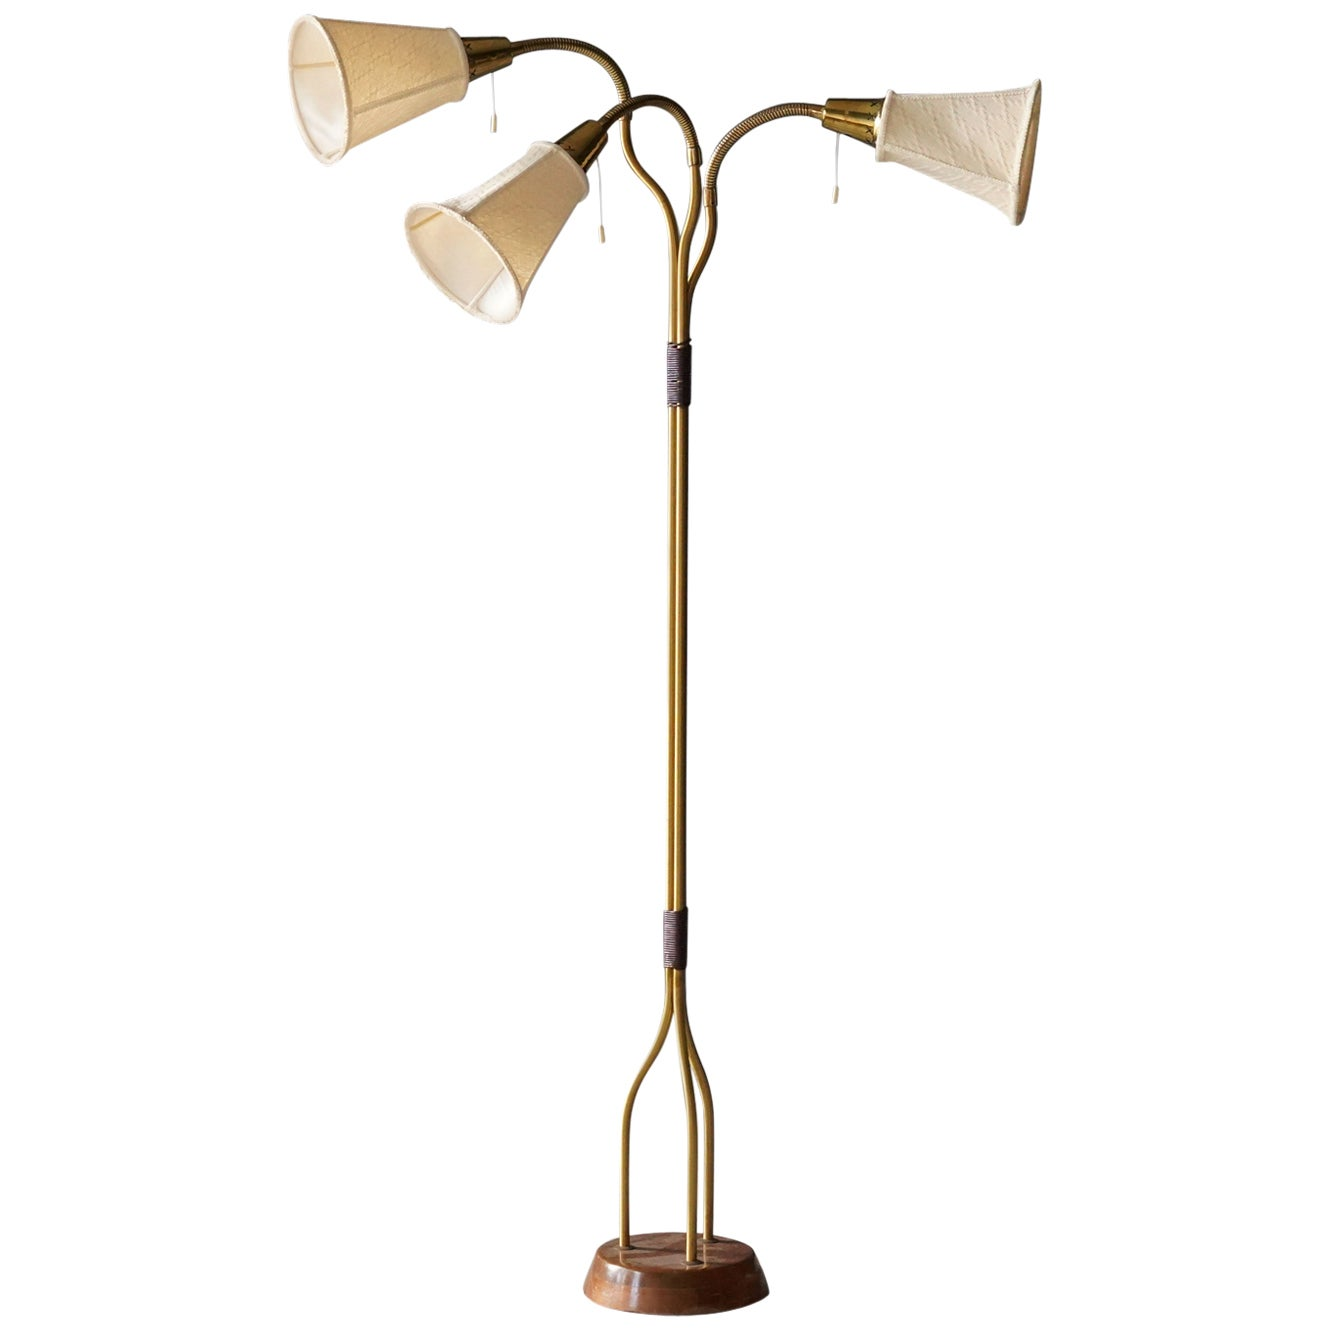 Swedish Designer, Organic Modernist Floor Lamp, Brass, Teak, Fabric, 1950s